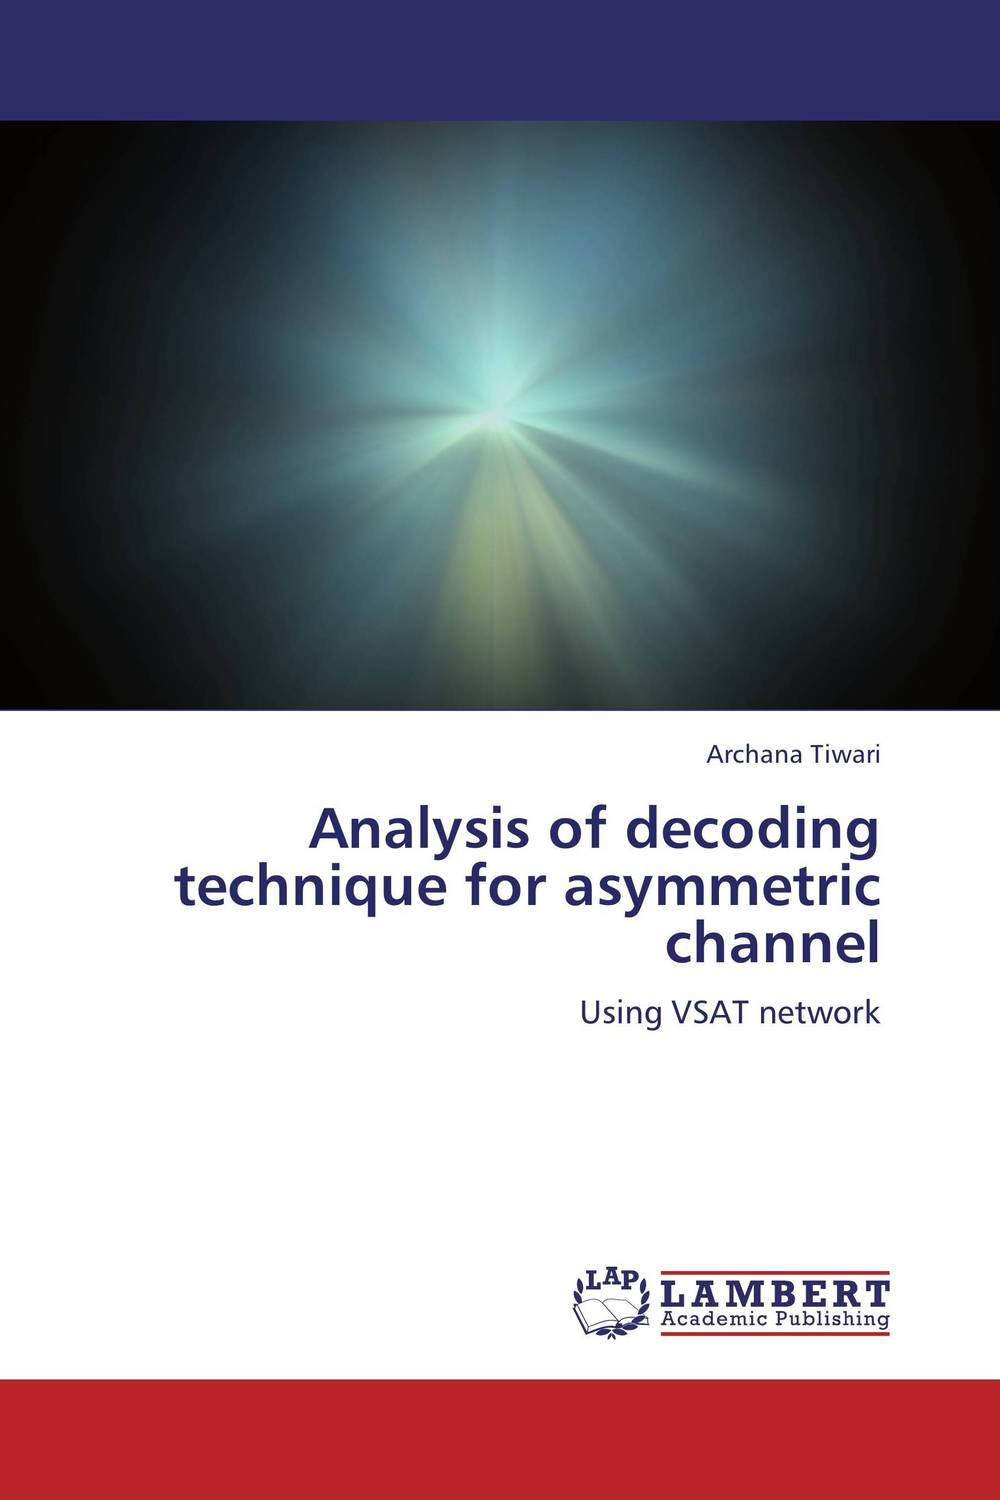 Analysis of decoding technique for asymmetric channel